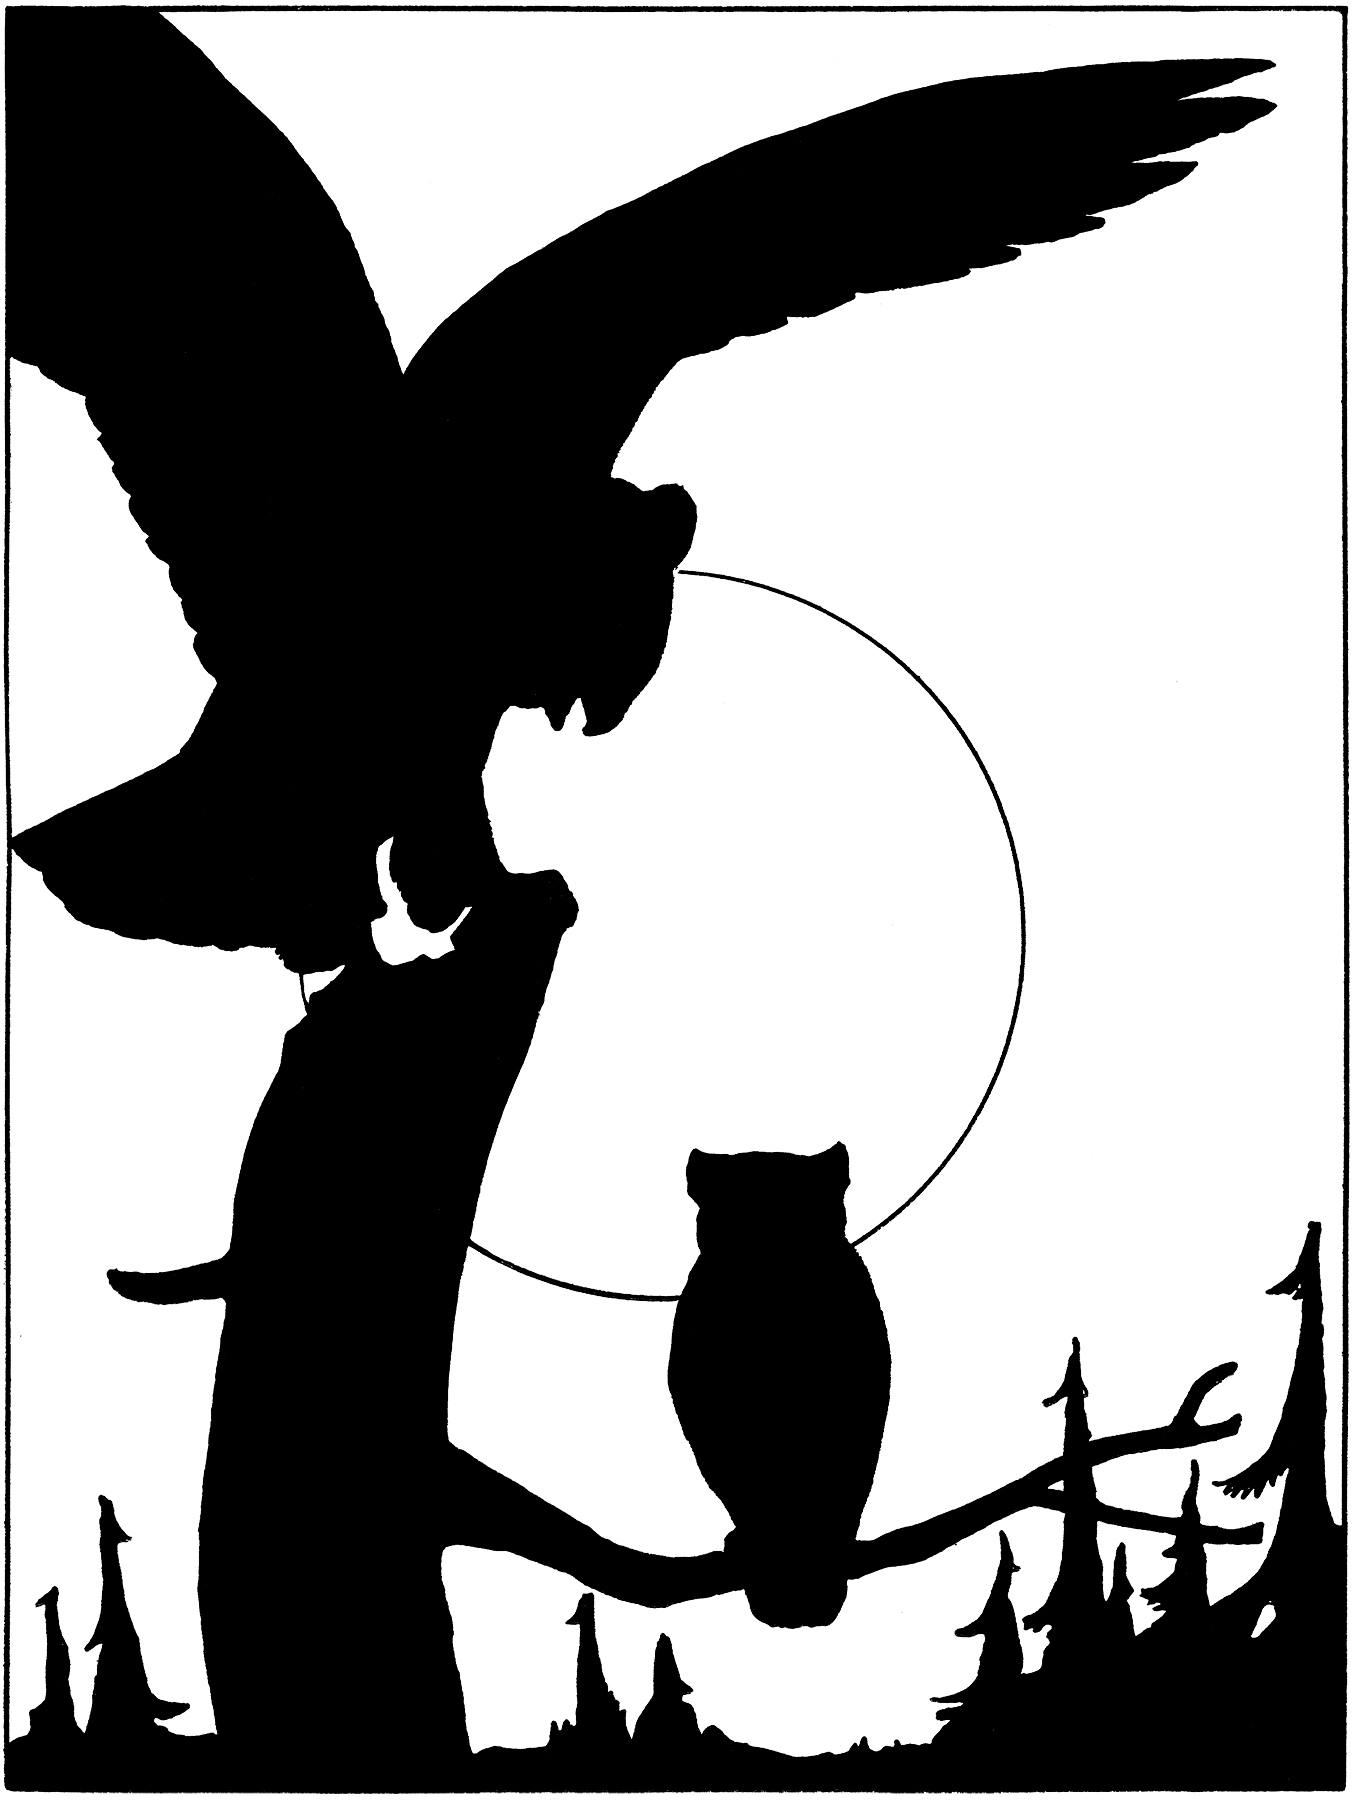 Vintage Owl Silhouette The Graphics Fairy